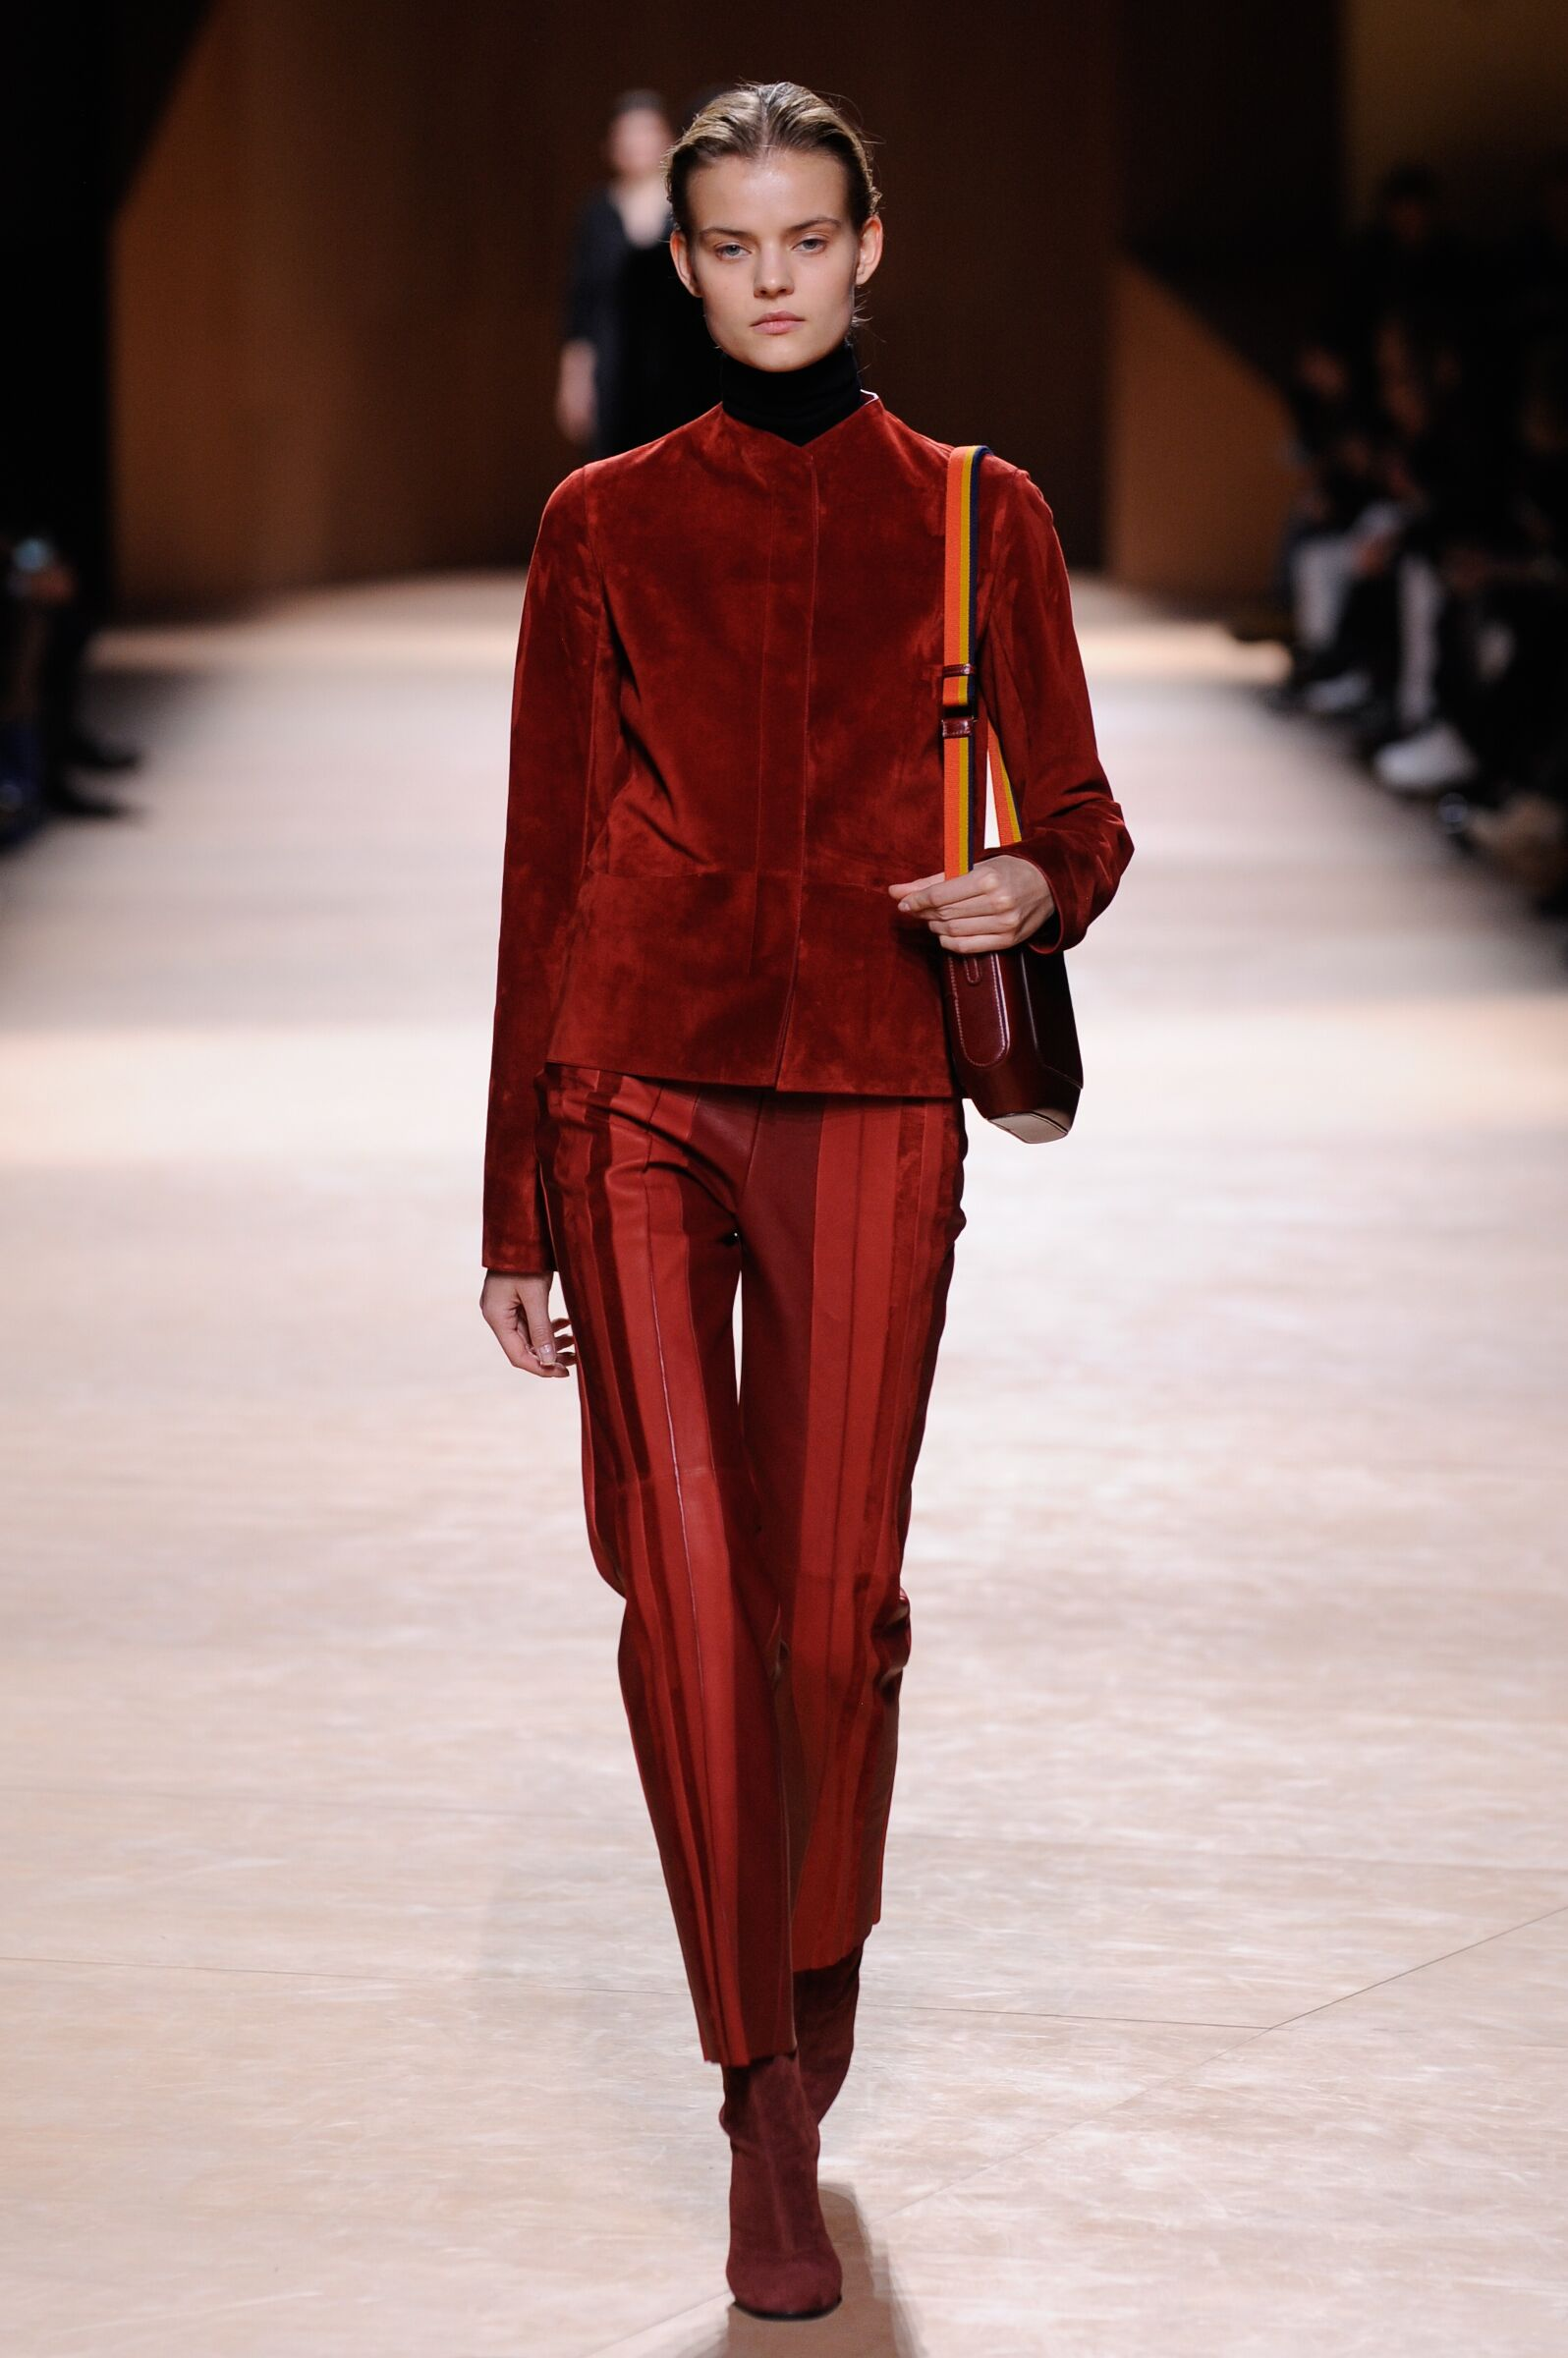 Catwalk Hermès Fall Winter 2015 16 Women's Collection Paris Fashion Week